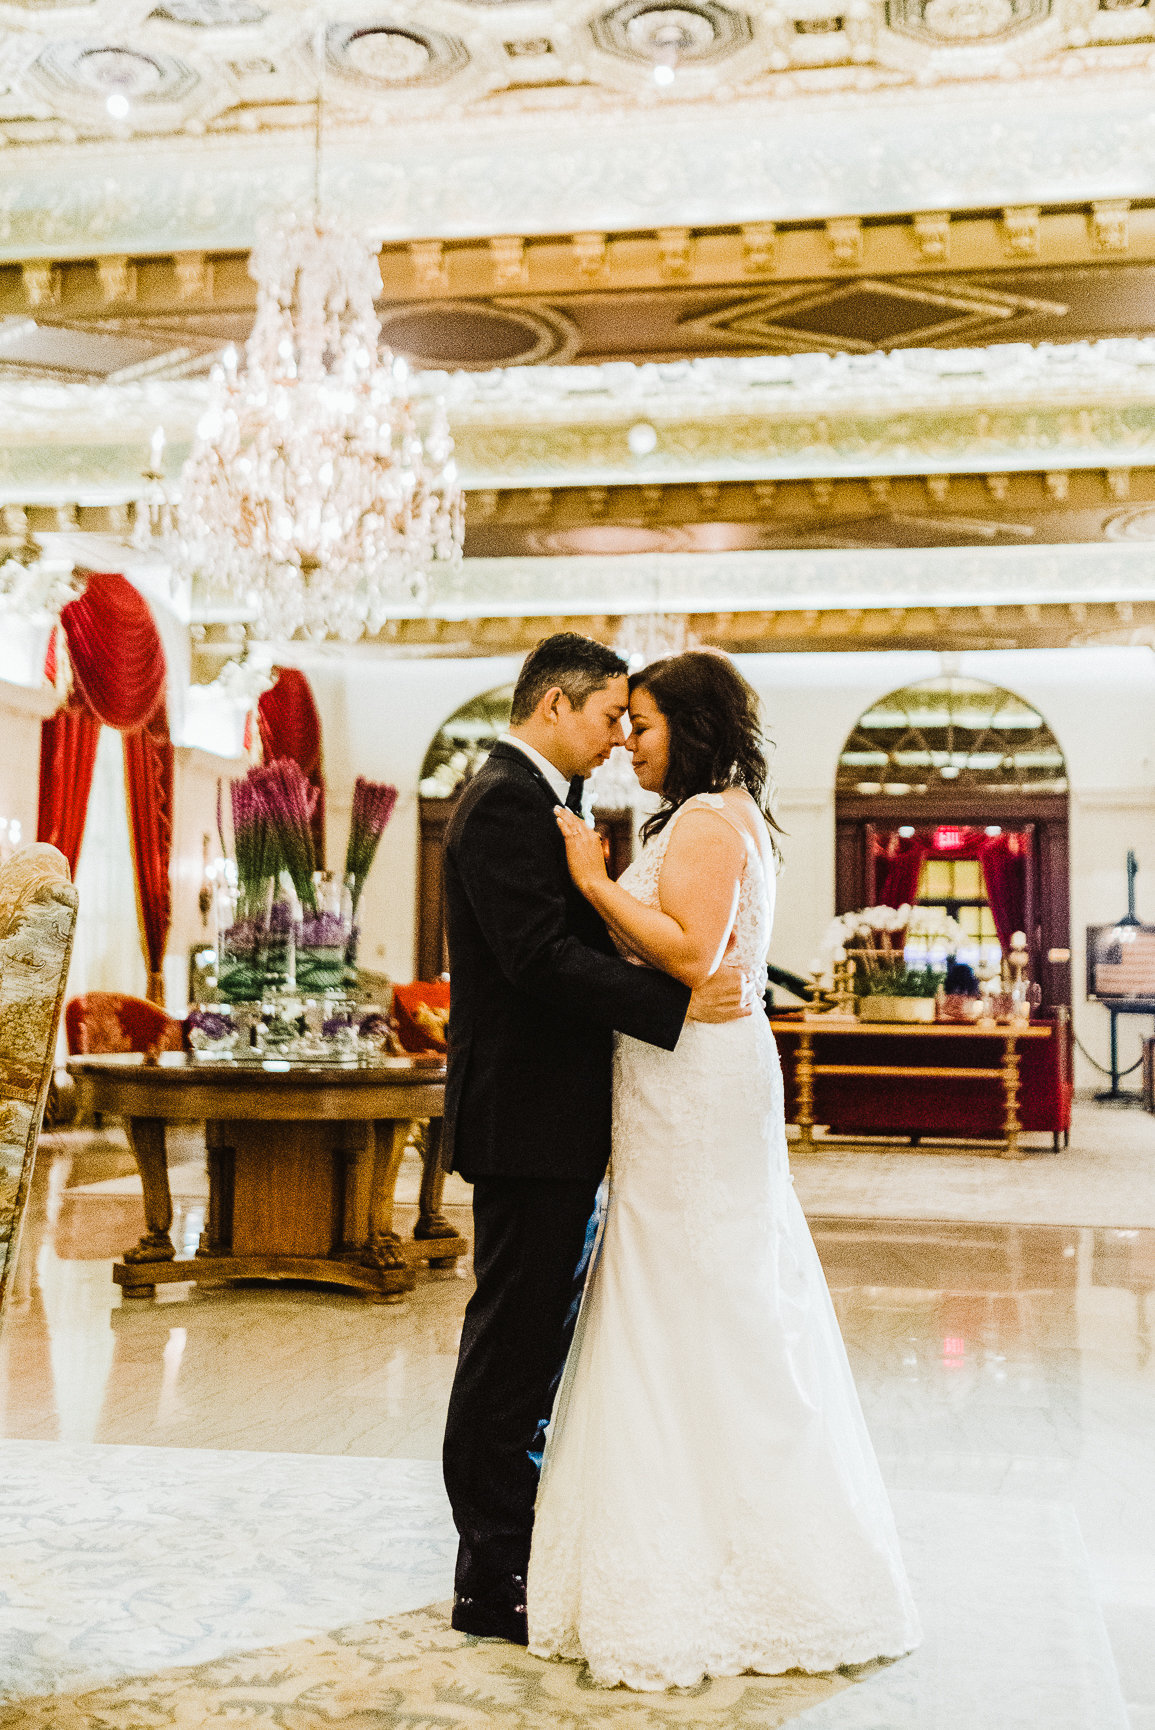 WEDDINGPHOTOGRAPHERMIAMI-171